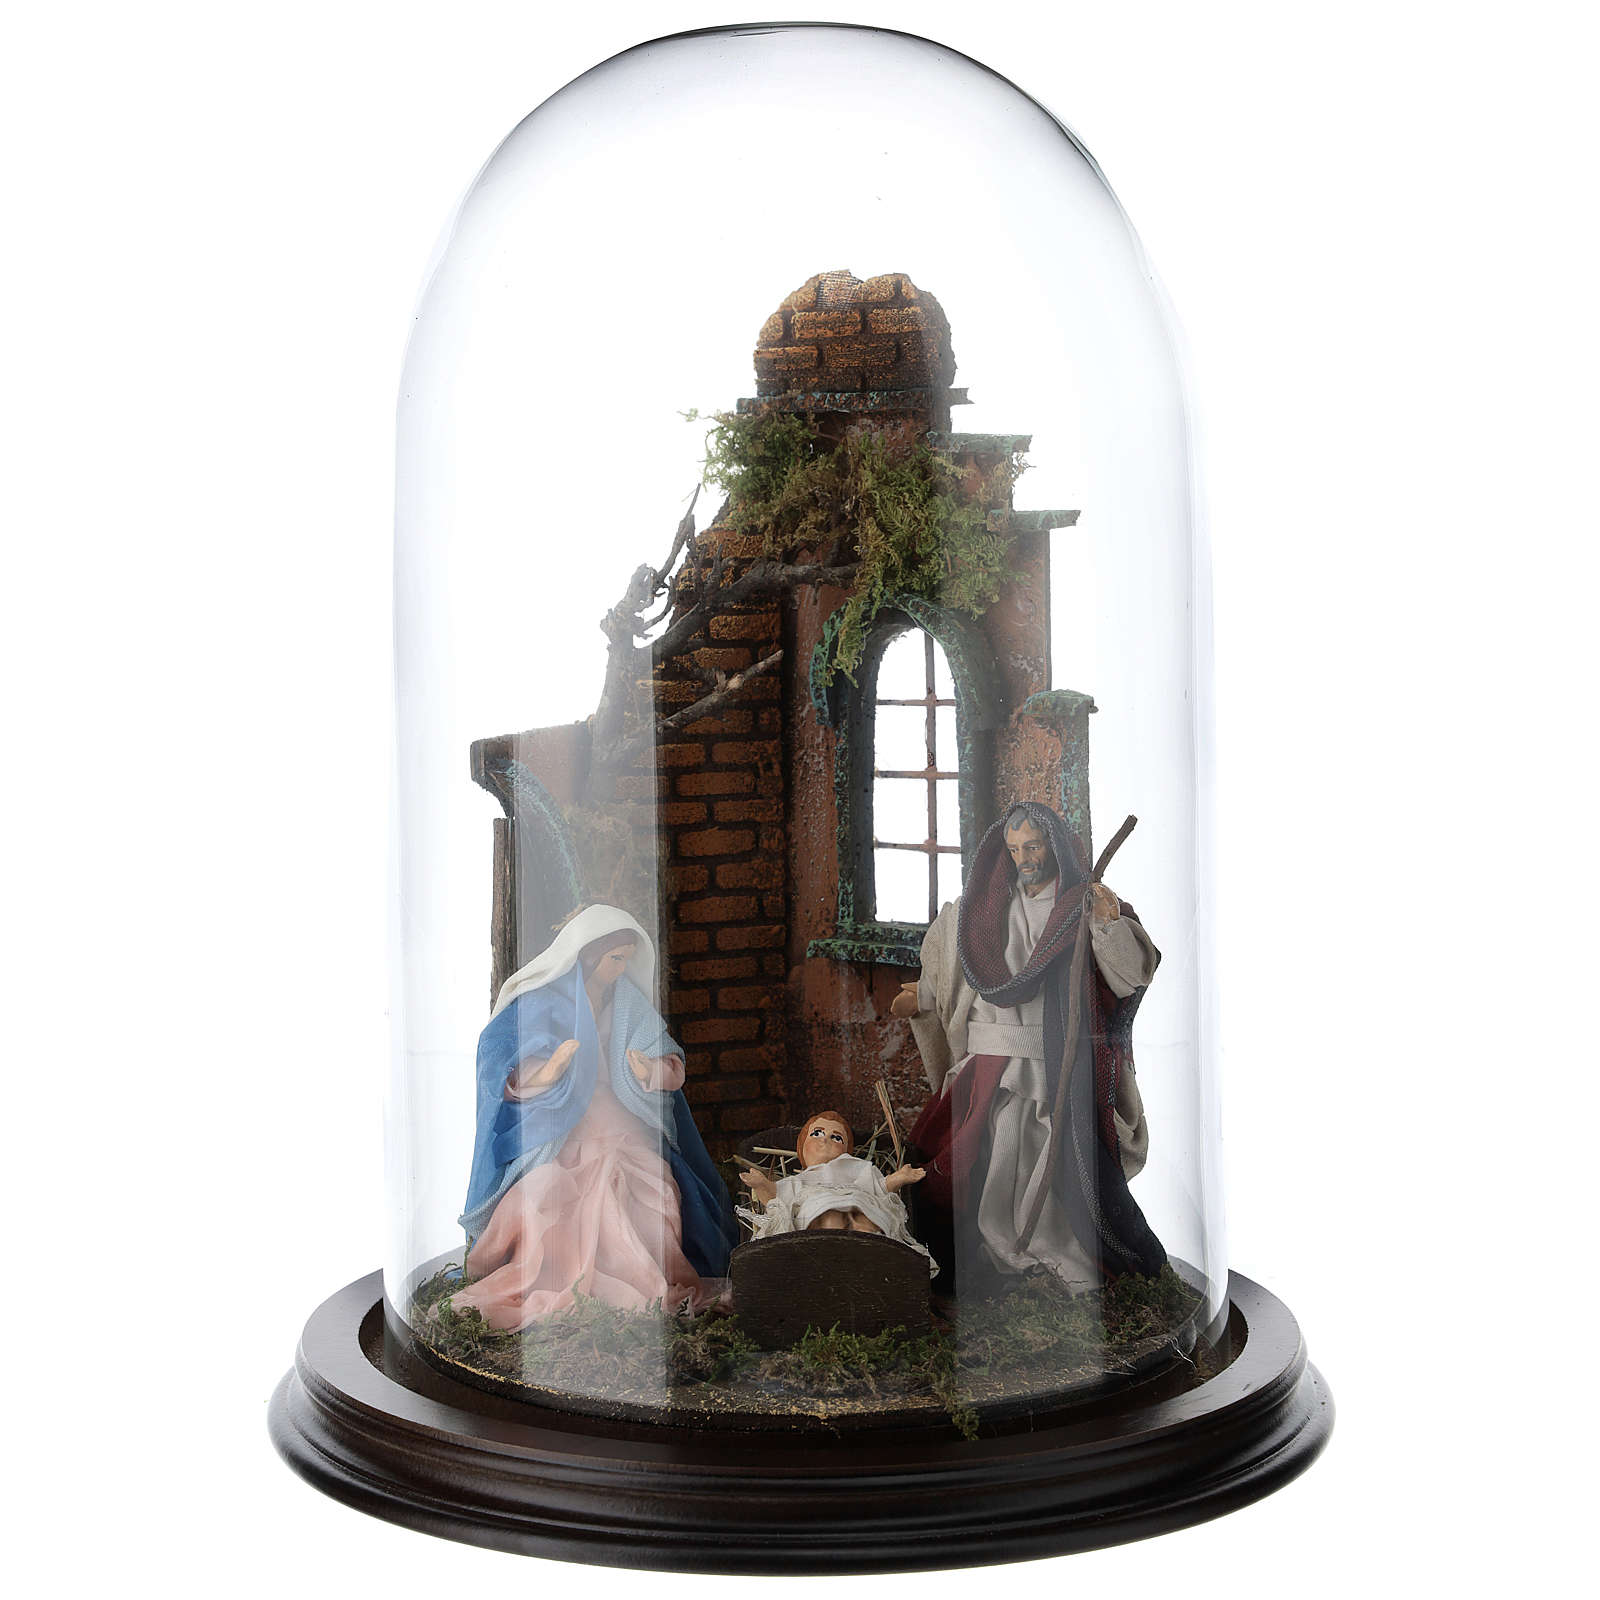 Neapolitan nativity scene on a wooden base with a glass domed roof 4